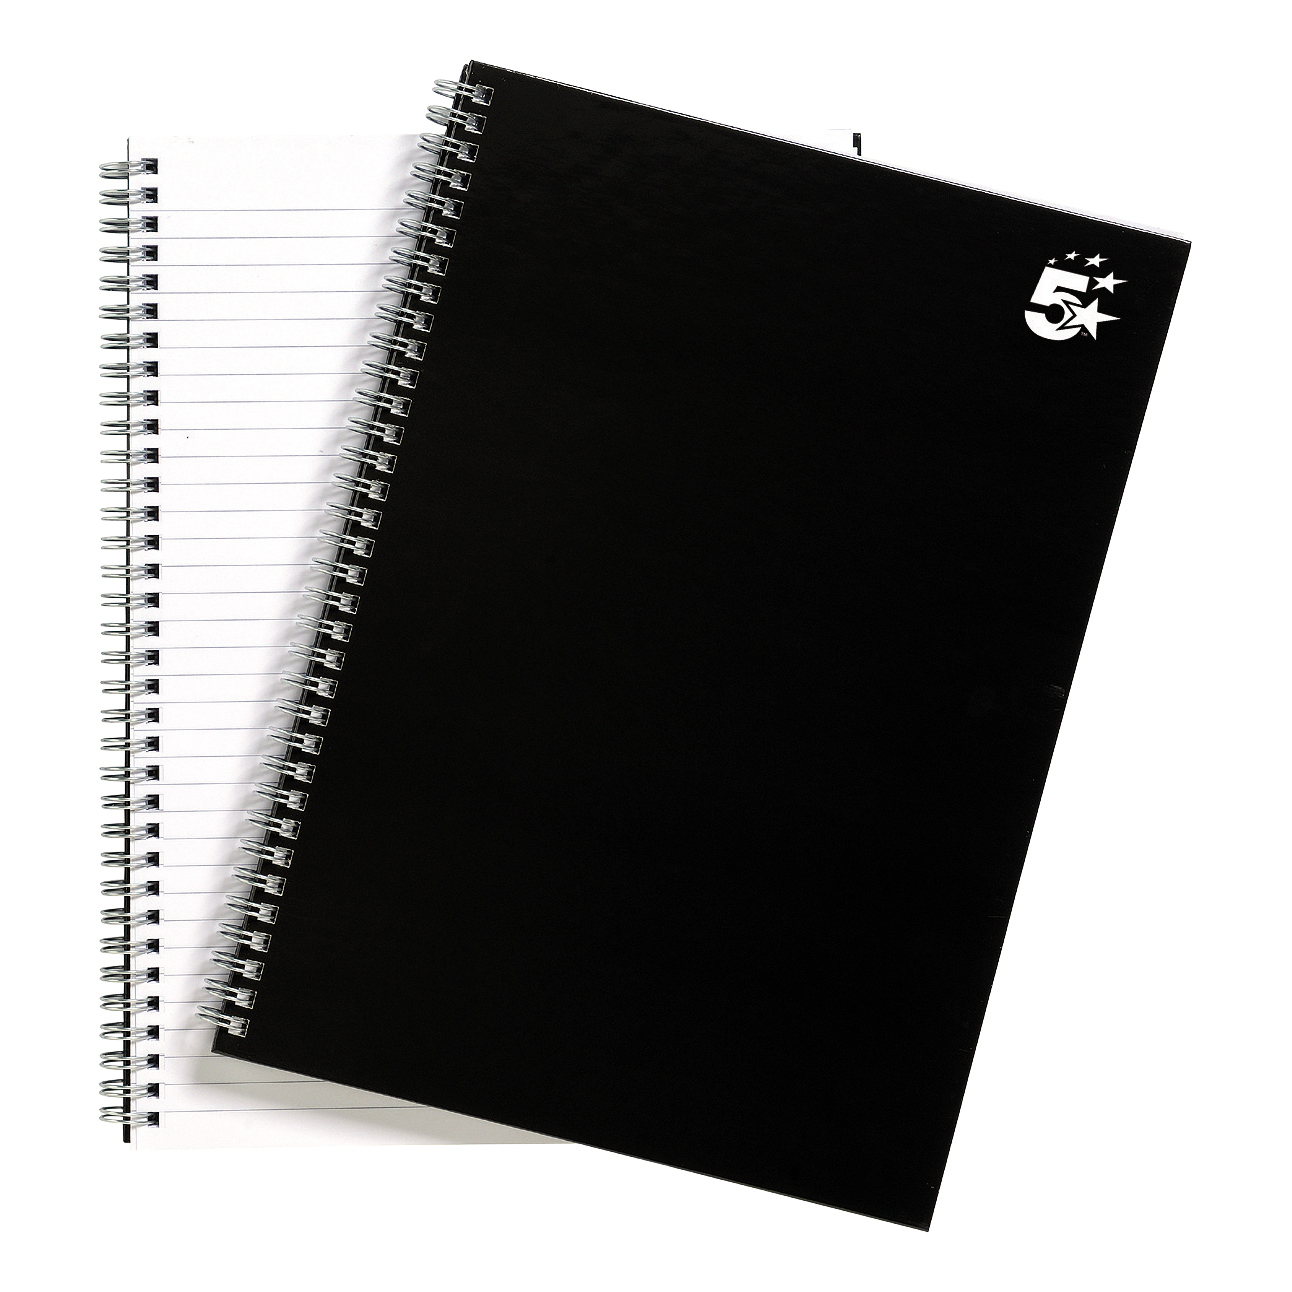 5 Star Office Notebook Twin Wirebound Hard Cover Ruled 80gsm A4 Black [Pack 5]